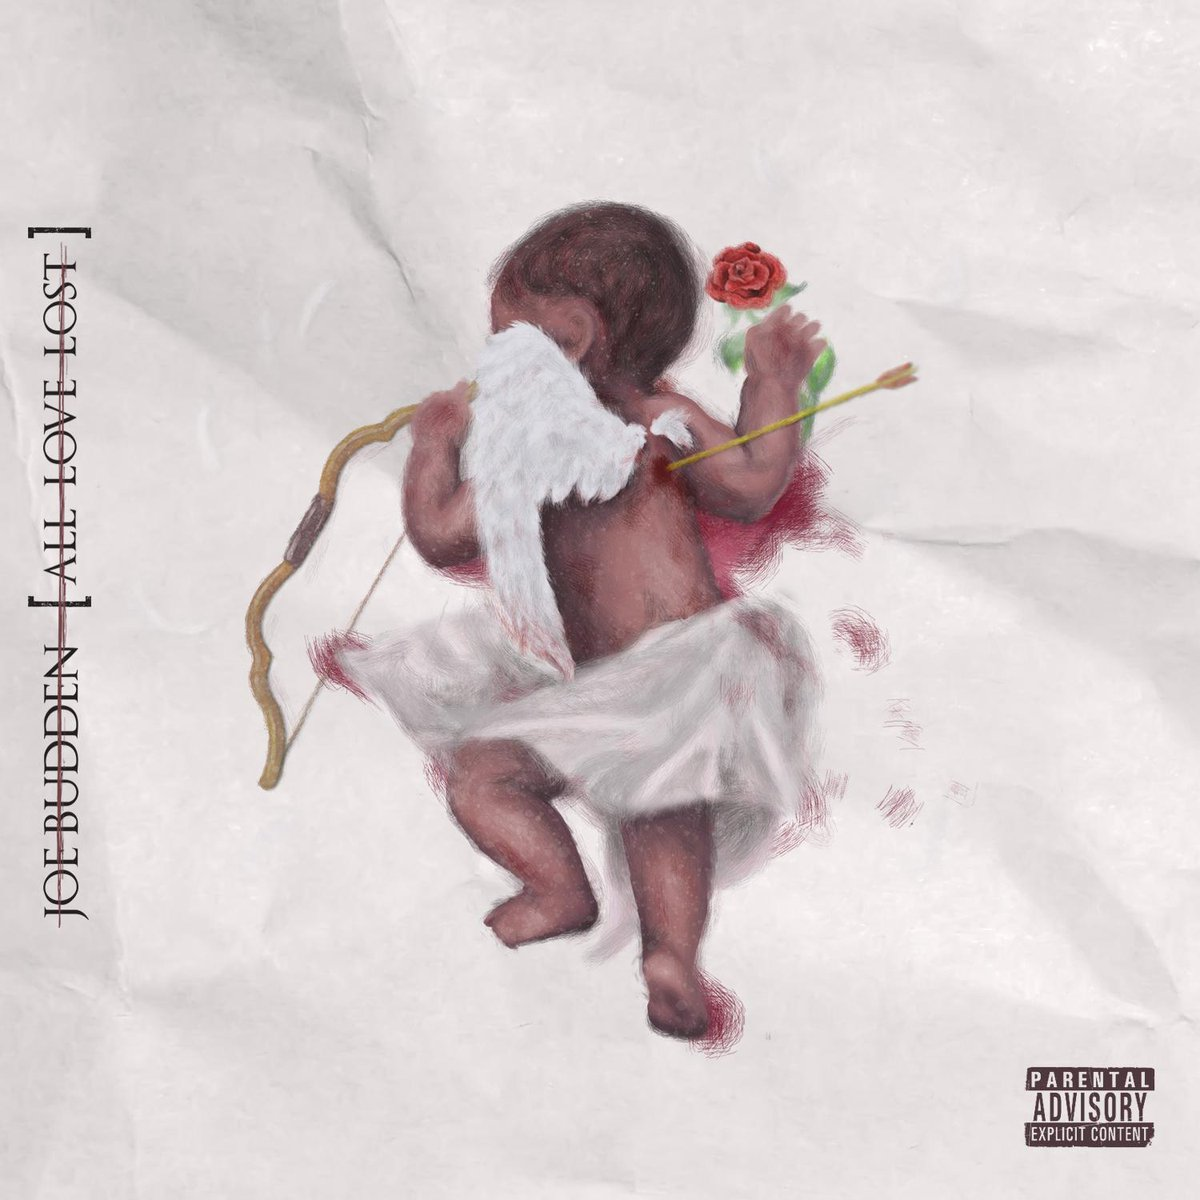 It's @JoeBudden season!  Get his new album #AllLoveLost today | http://t.co/oY8Sbl2LP4 http://t.co/TaitFmjHR3